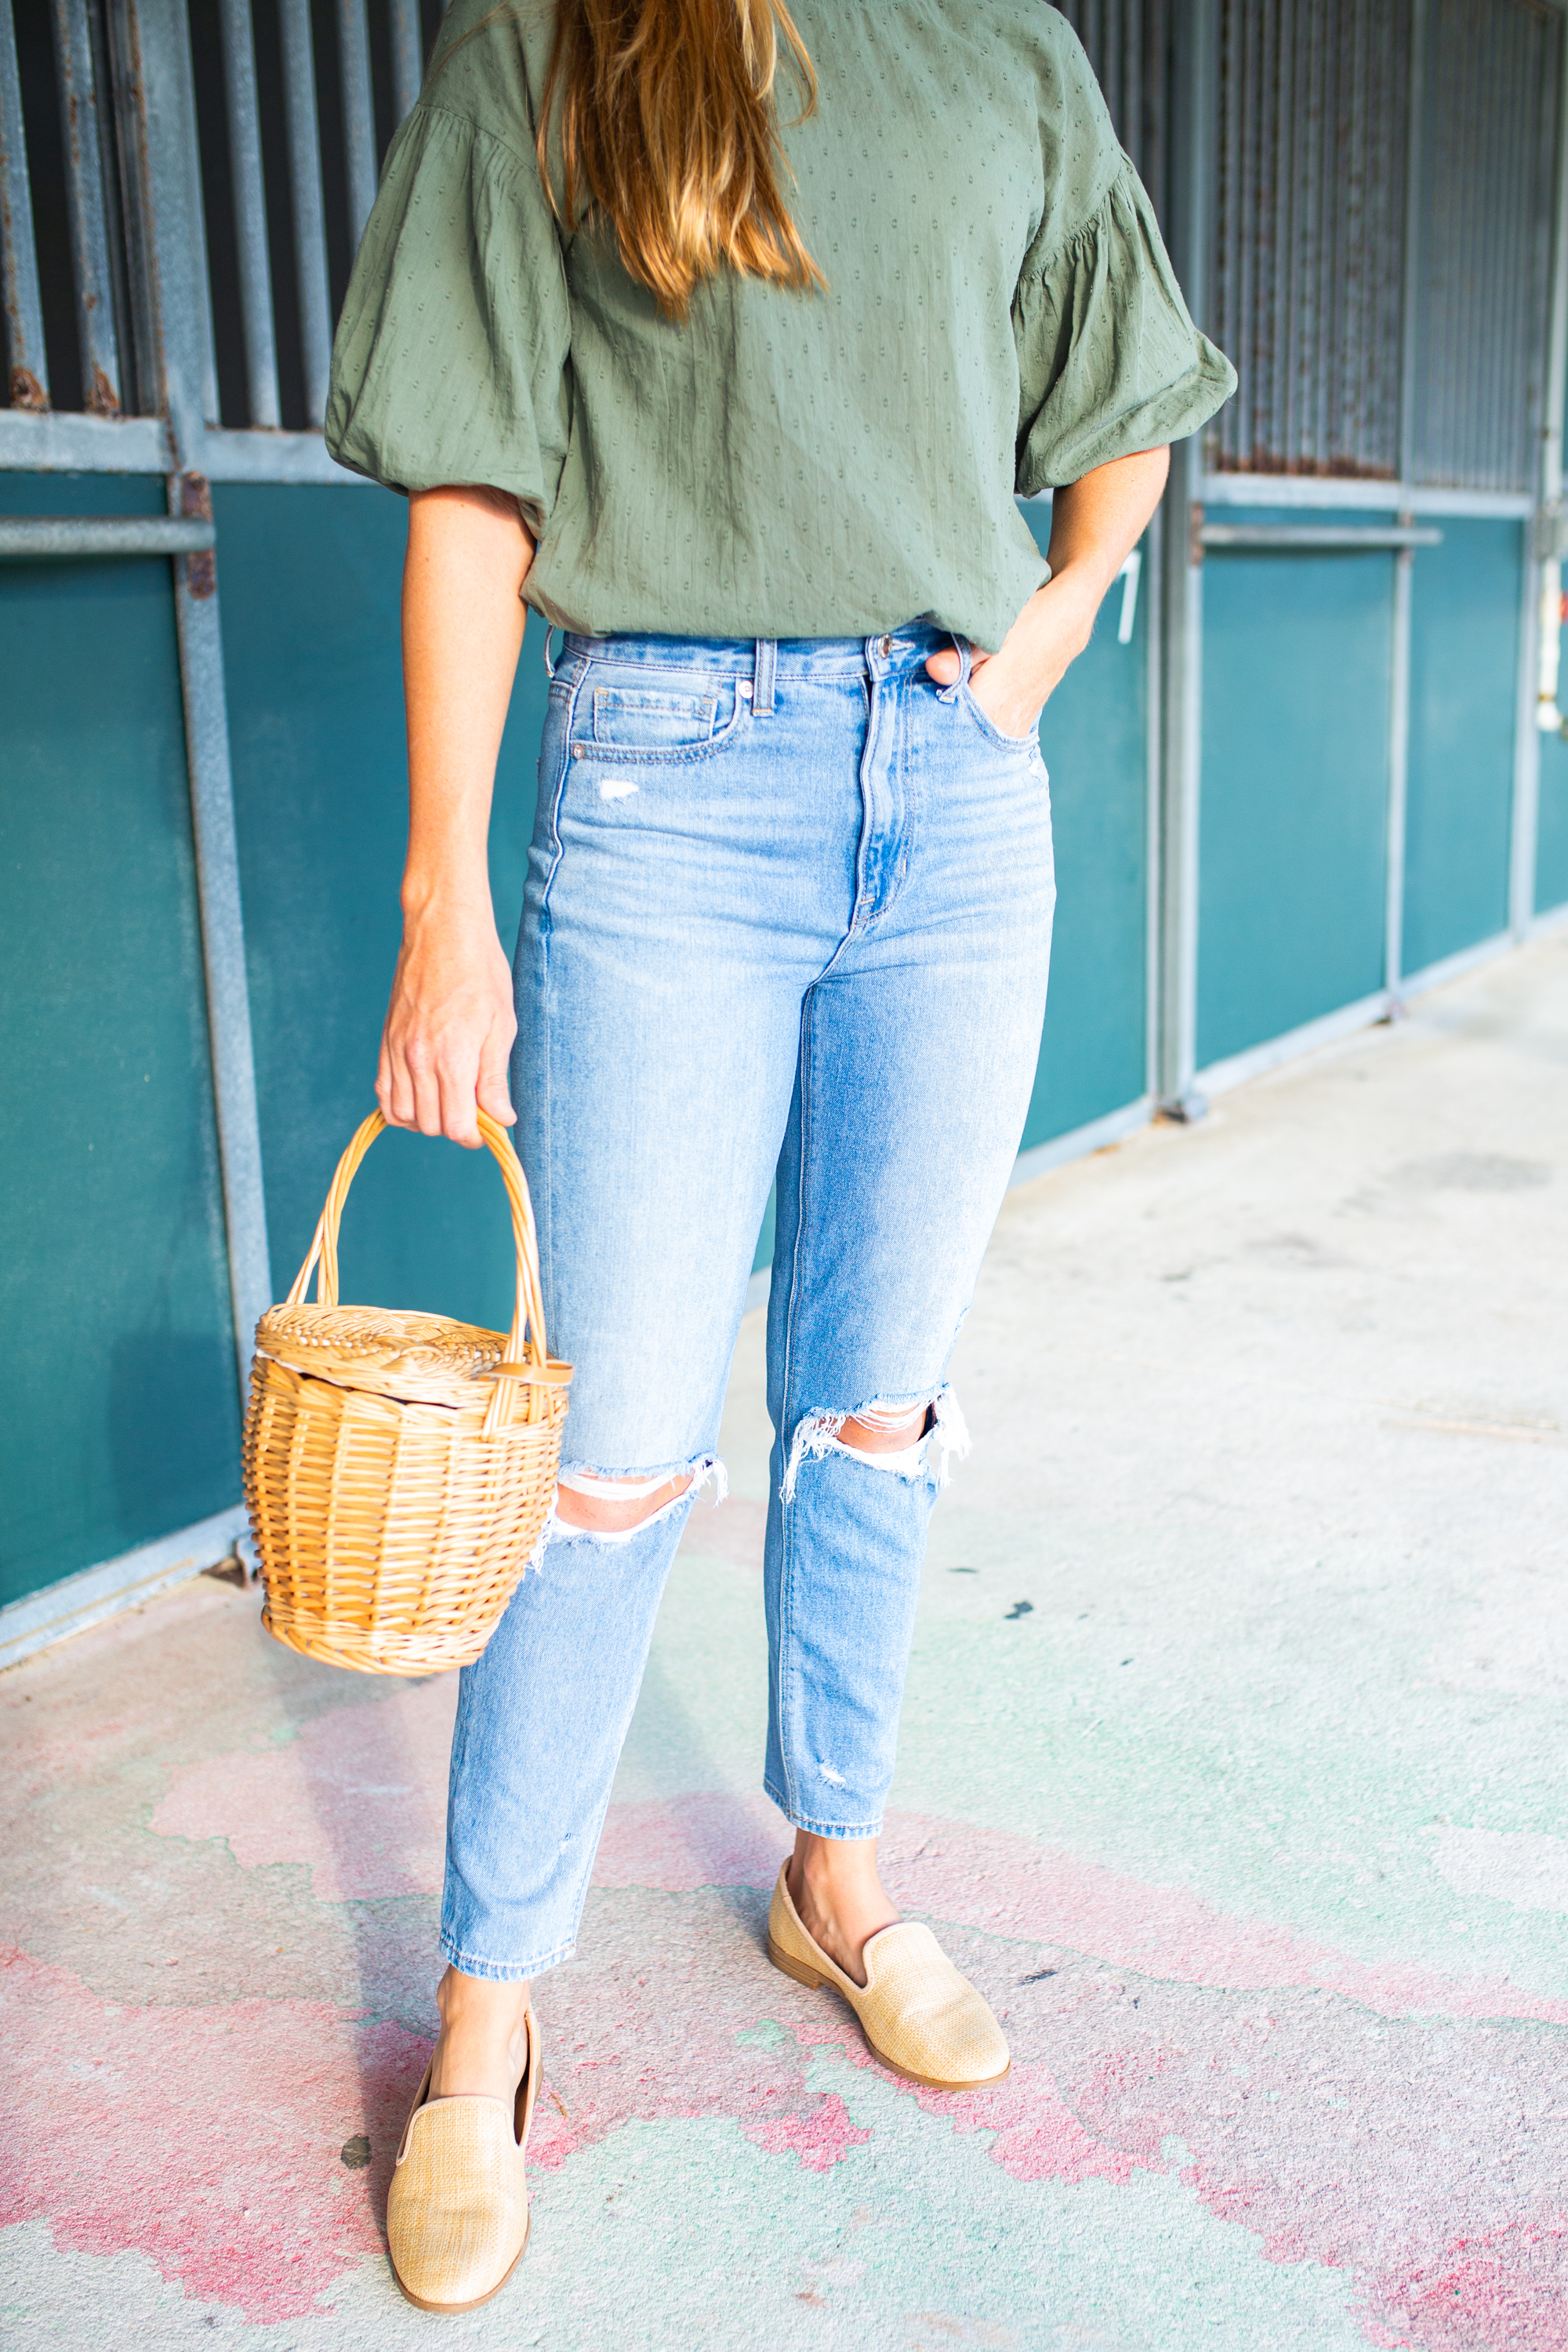 How to Style Mom Jeans for Fall / Cute Fall Outfits / Autumn Outfits / Casual Fall Outfits / Mom Jeans Outfit Fall / Outfit Ideas with Mom Jeans / Puff Sleeve Top - Sunshine Style, A Florida Fashion and Lifestyle Blog by Katie